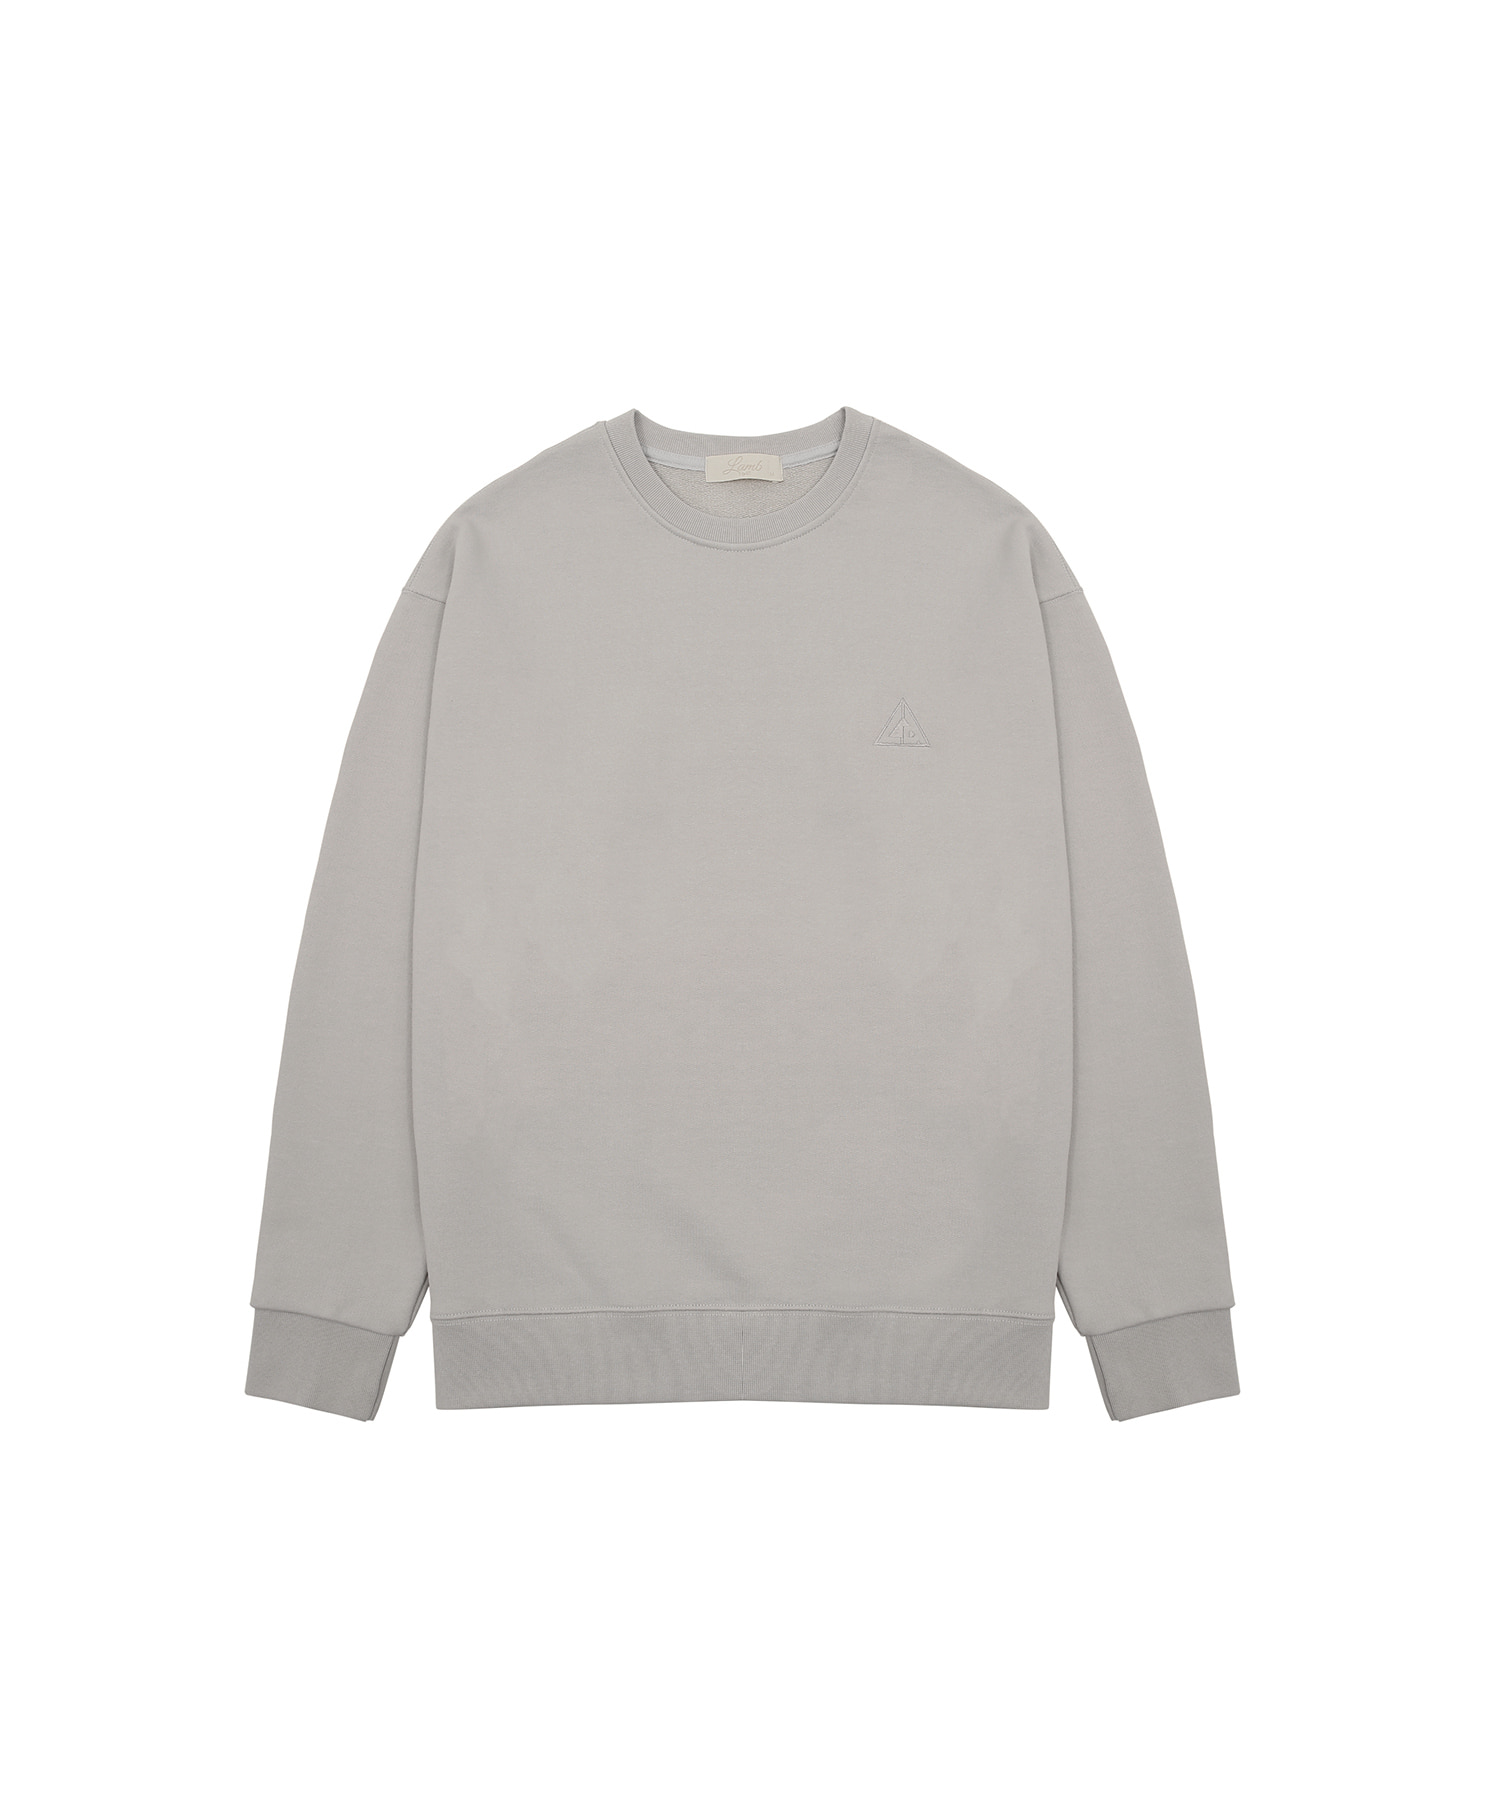 Signature sweatshirt (Concrete)